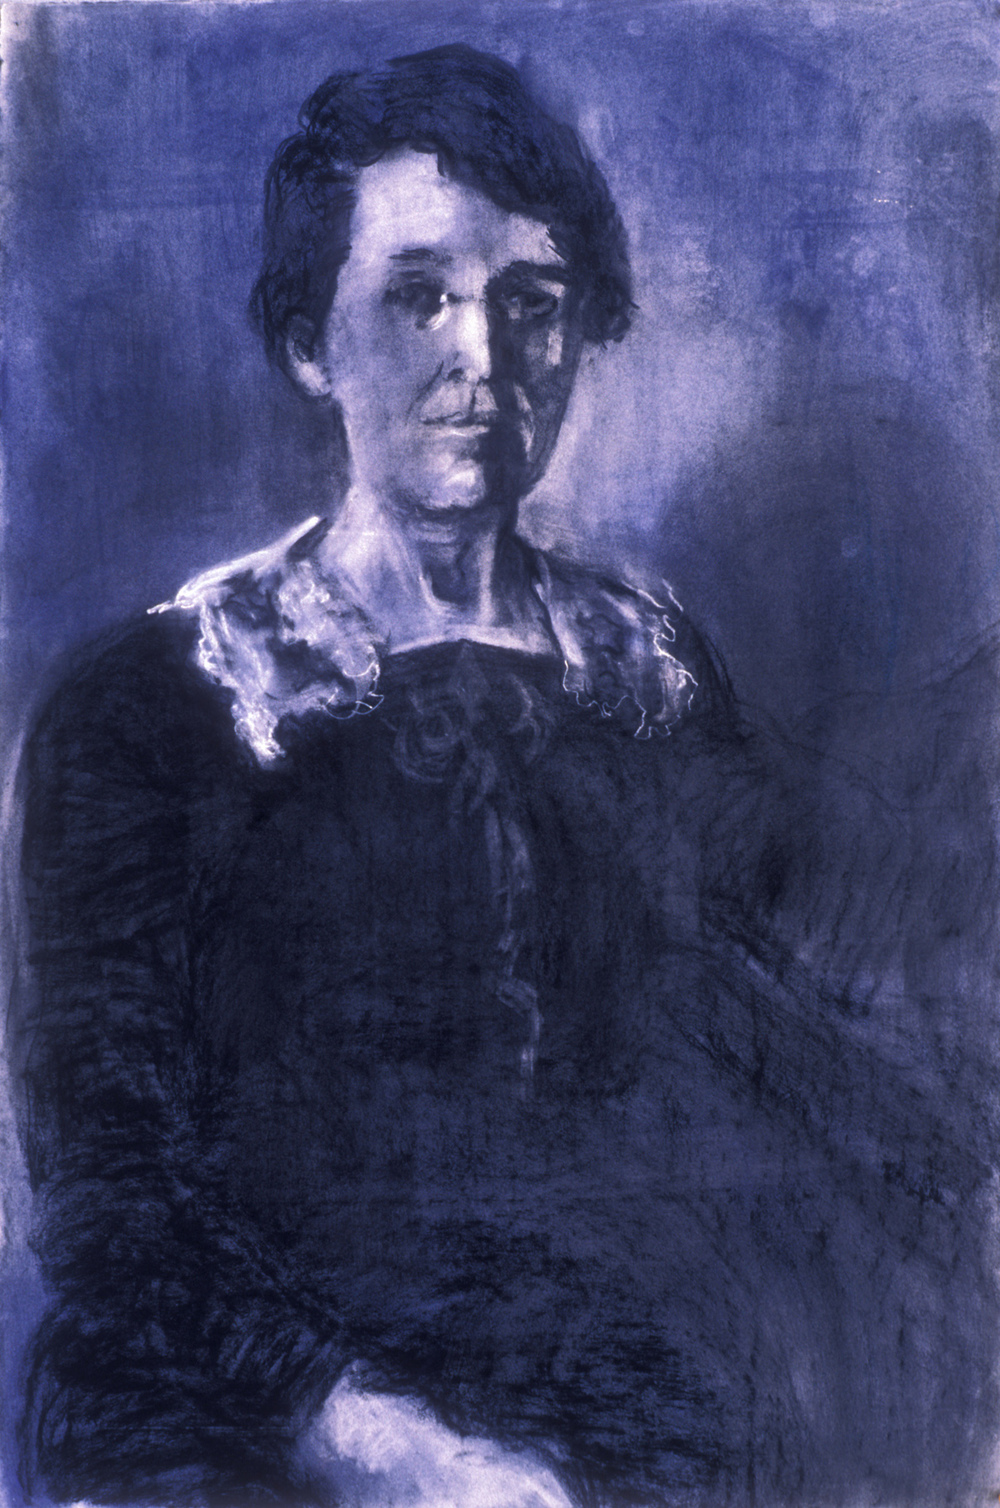 Ninetta Runnals, Colby 1908, Beloved Dean of Women, 2008.  Charcoal, pastel, heightened with white on paper. 44 x 30 in.